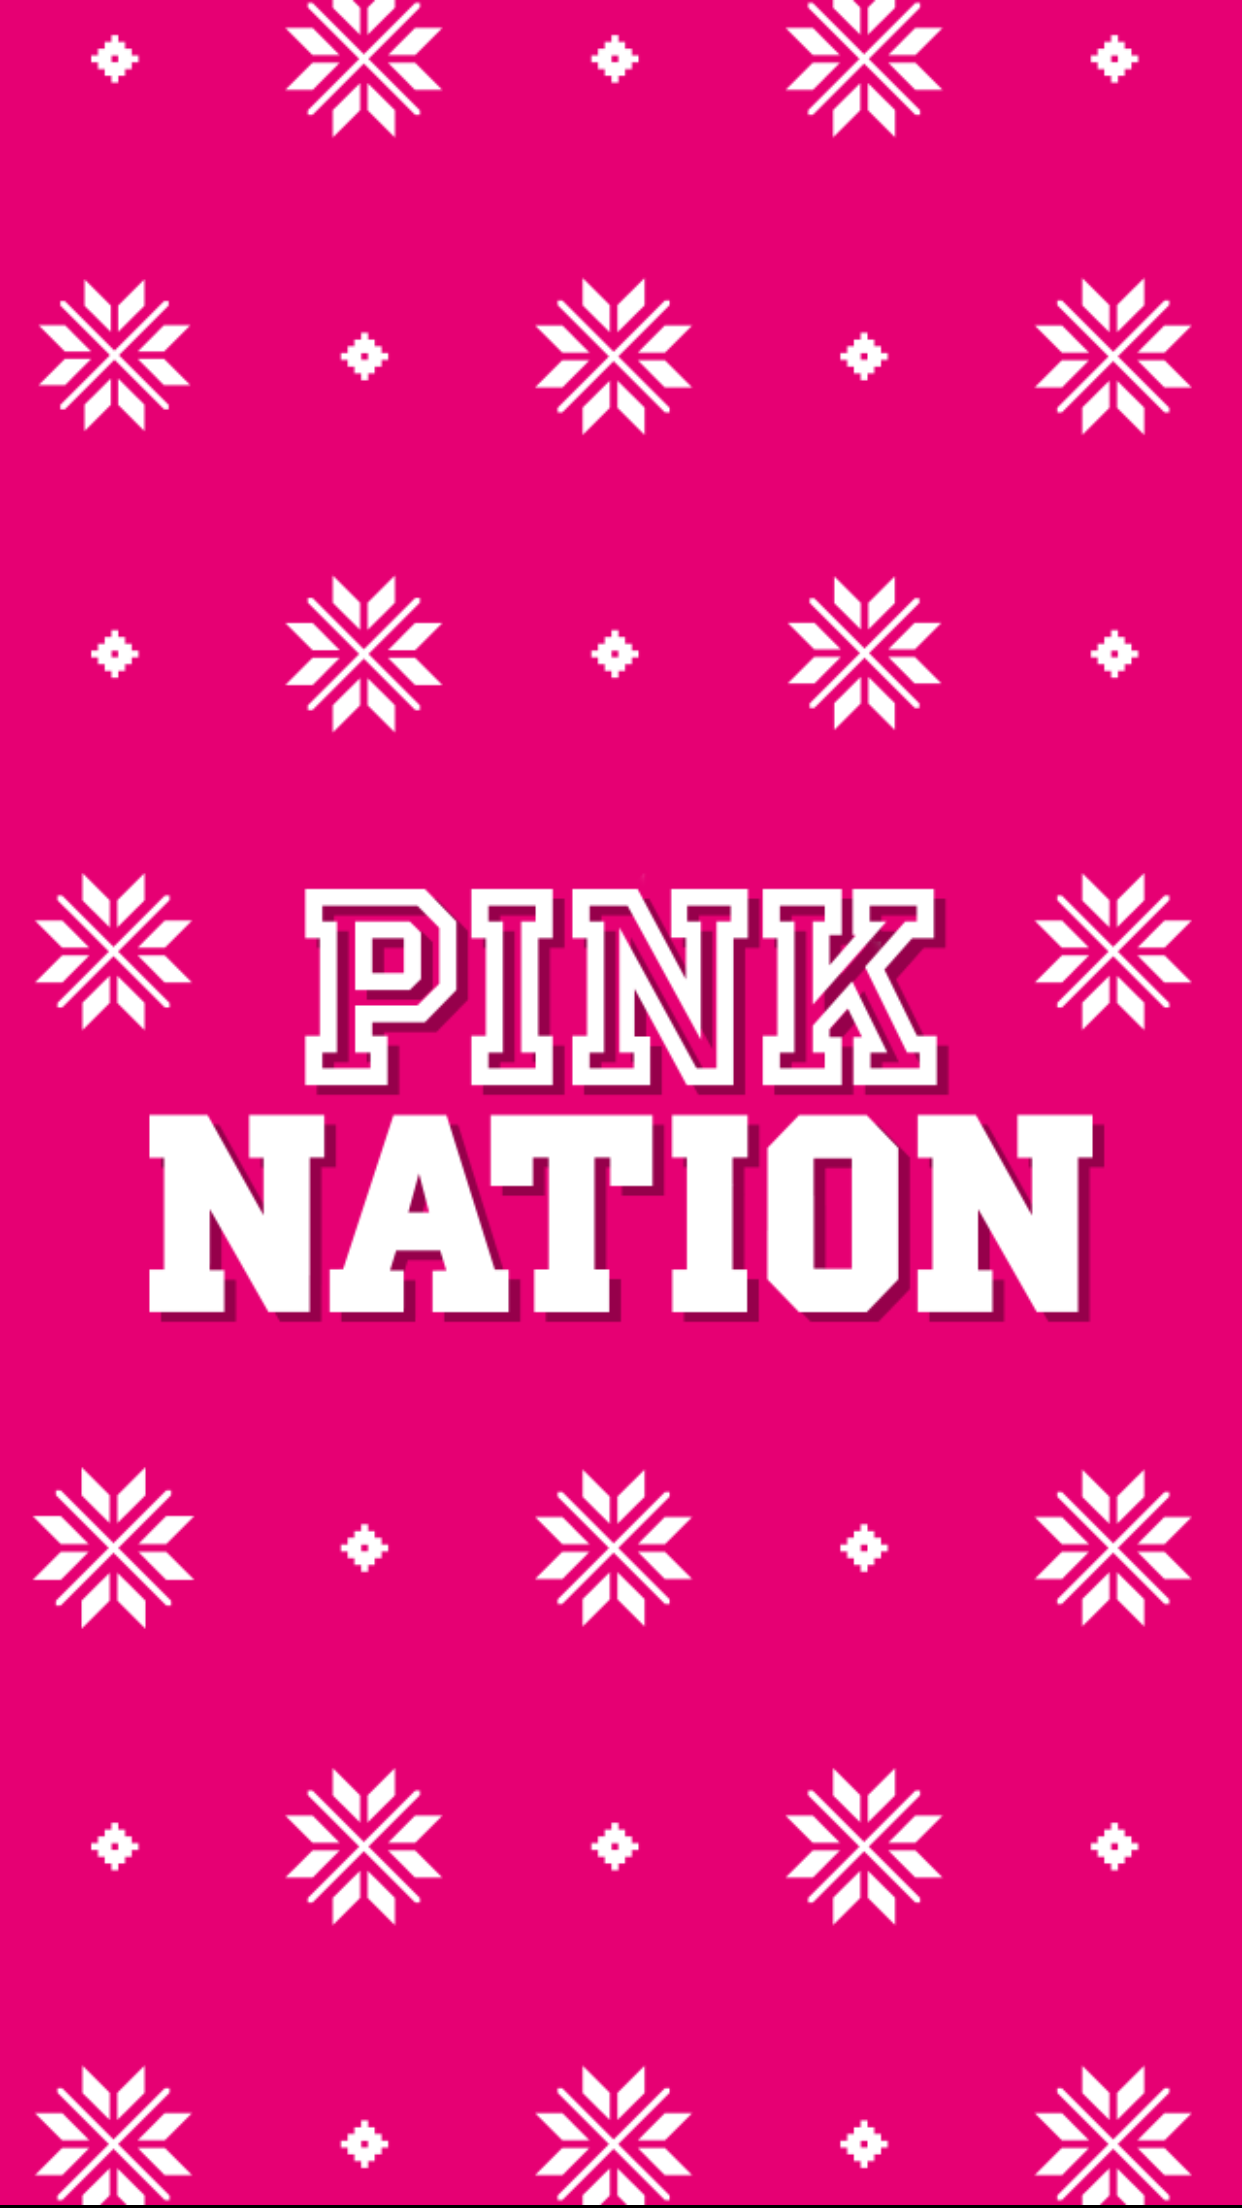 Pink Nation Wallpaper – Why It Is The Best Picture design For Computers